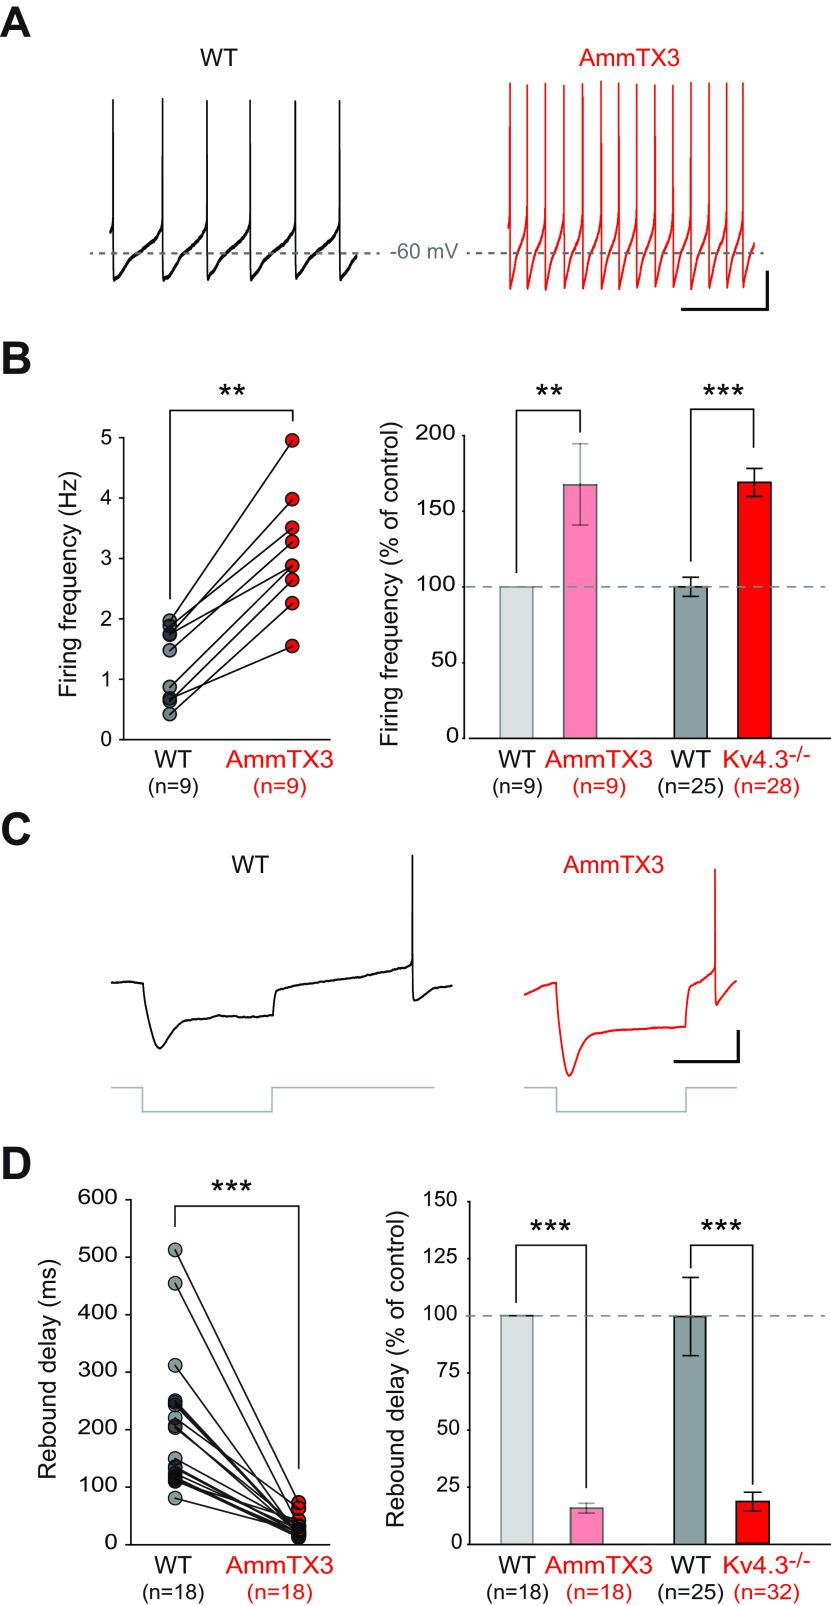 Comparing the alterations in electrophysiological phenotype after acute blockade of Kv4 channels with the Kv4.3−/− mouse model. A , Current-clamp recordings showing the spontaneous pattern of activity of a WT SNc DA neuron in control condition (black trace, left) and after AmmTX3 application (red trace, right). B , left, Line and scatter plot showing the change in spontaneous firing frequency induced by AmmTX3 application in individual WT SNc DA neurons. Right, Bar plot comparing the average change in spontaneous firing frequency after AmmTX3 application (left, light colors) or Kv4.3 channel deletion (right, dark colors). C , Current-clamp recordings showing the voltage response of a WT SNc DA neuron to a hyperpolarizing current step (bottom gray traces) in control condition (left, black trace) and after AmmTX3 application (right, red trace). D , left, Line and scatter plot showing the change in rebound delay induced by AmmTX3 application in individual WT SNc DA neurons. Right, Bar plot showing the average change in rebound delay after AmmTX3 application (left, light colors) or Kv4.3 channel deletion (right, dark colors); ** p